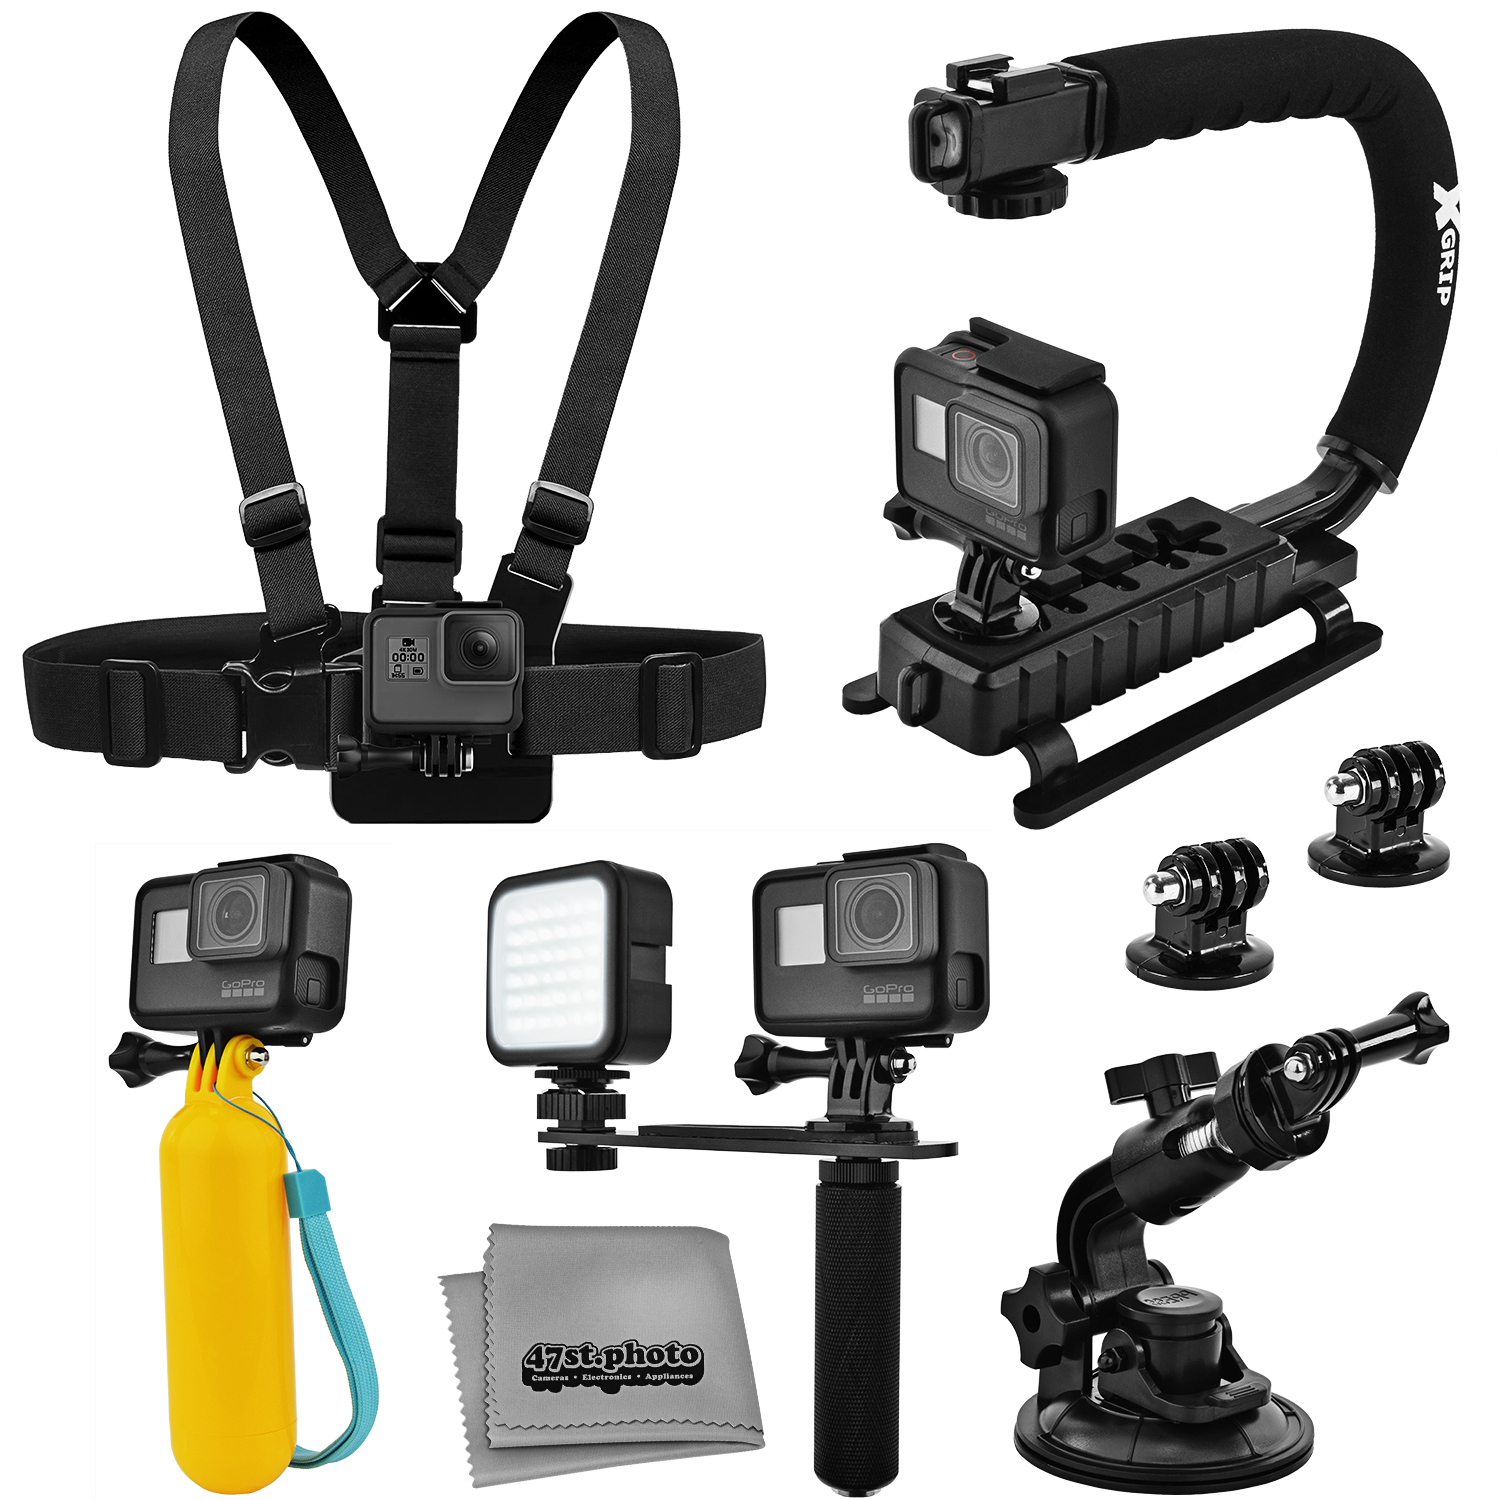 Accessory Kit for GoPro HERO5 Black / Session 4K Action Camera with X-Grip Stabilizer, HandGrip, Floating Handle, LED Video Light, Chest Mount, Tripod Adapter, Car Window Suction Cup, Microfiber Cloth GPH5BACCK1